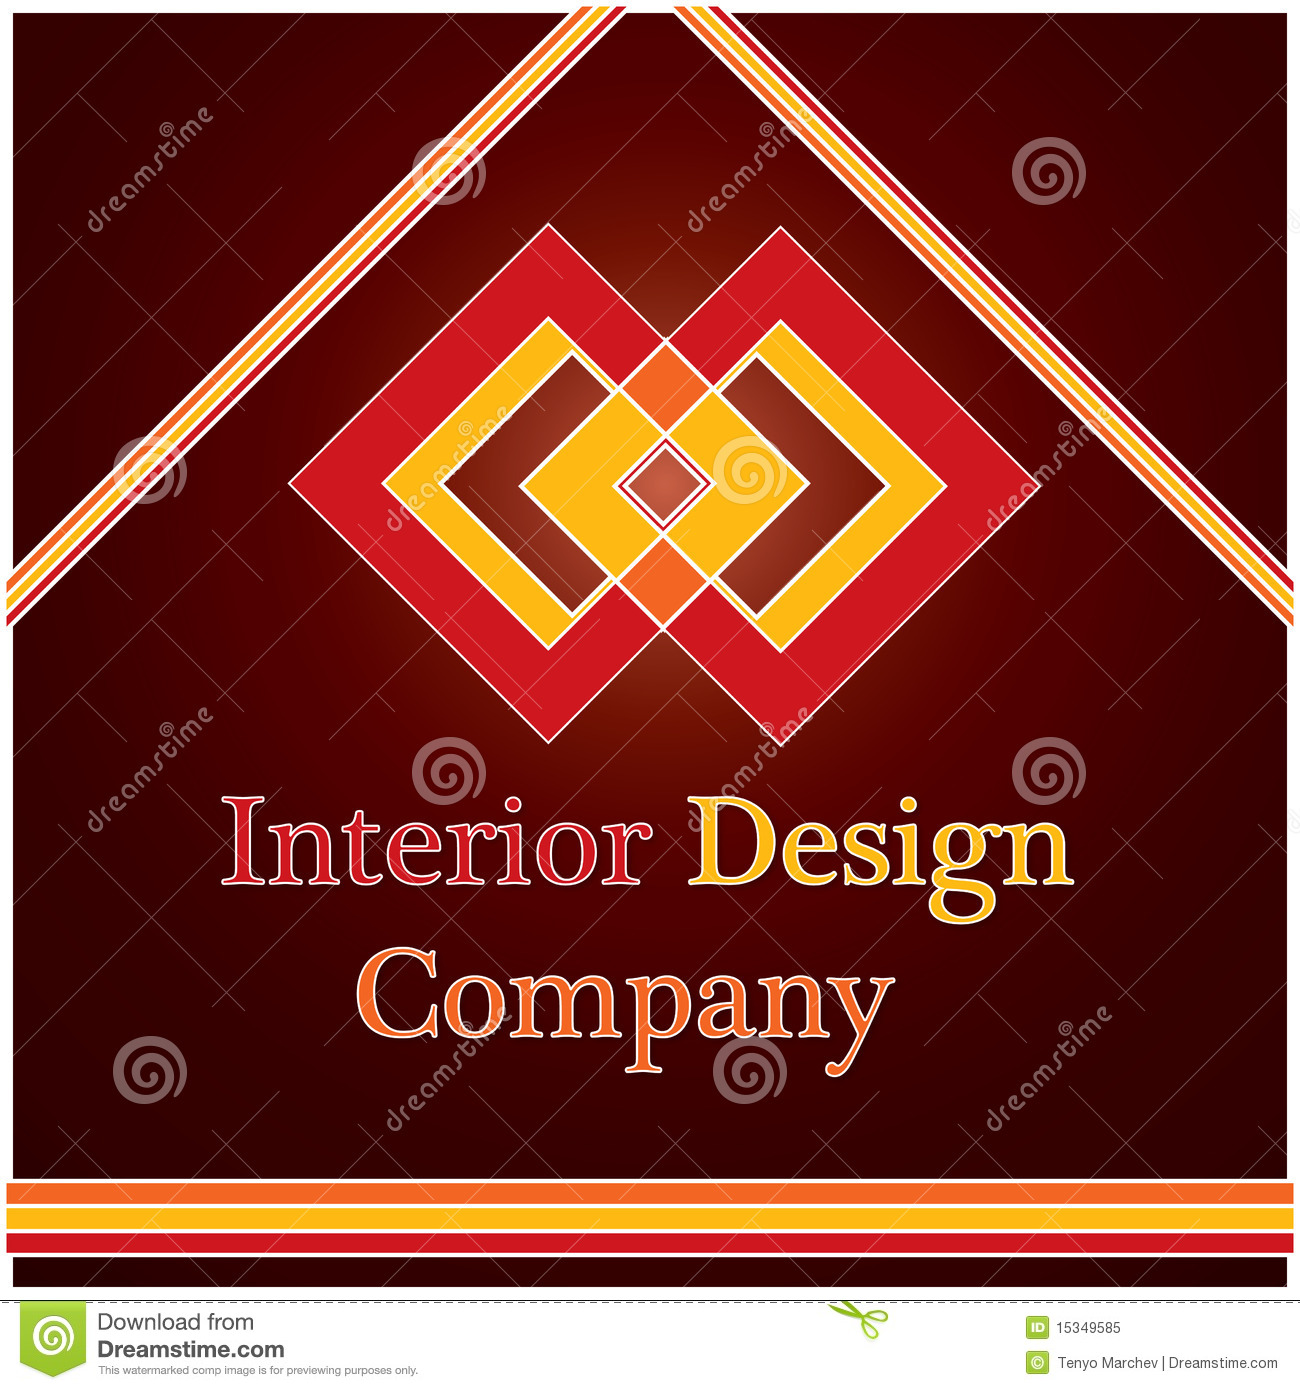 Royalty Free Stock Photo Company Design Interior